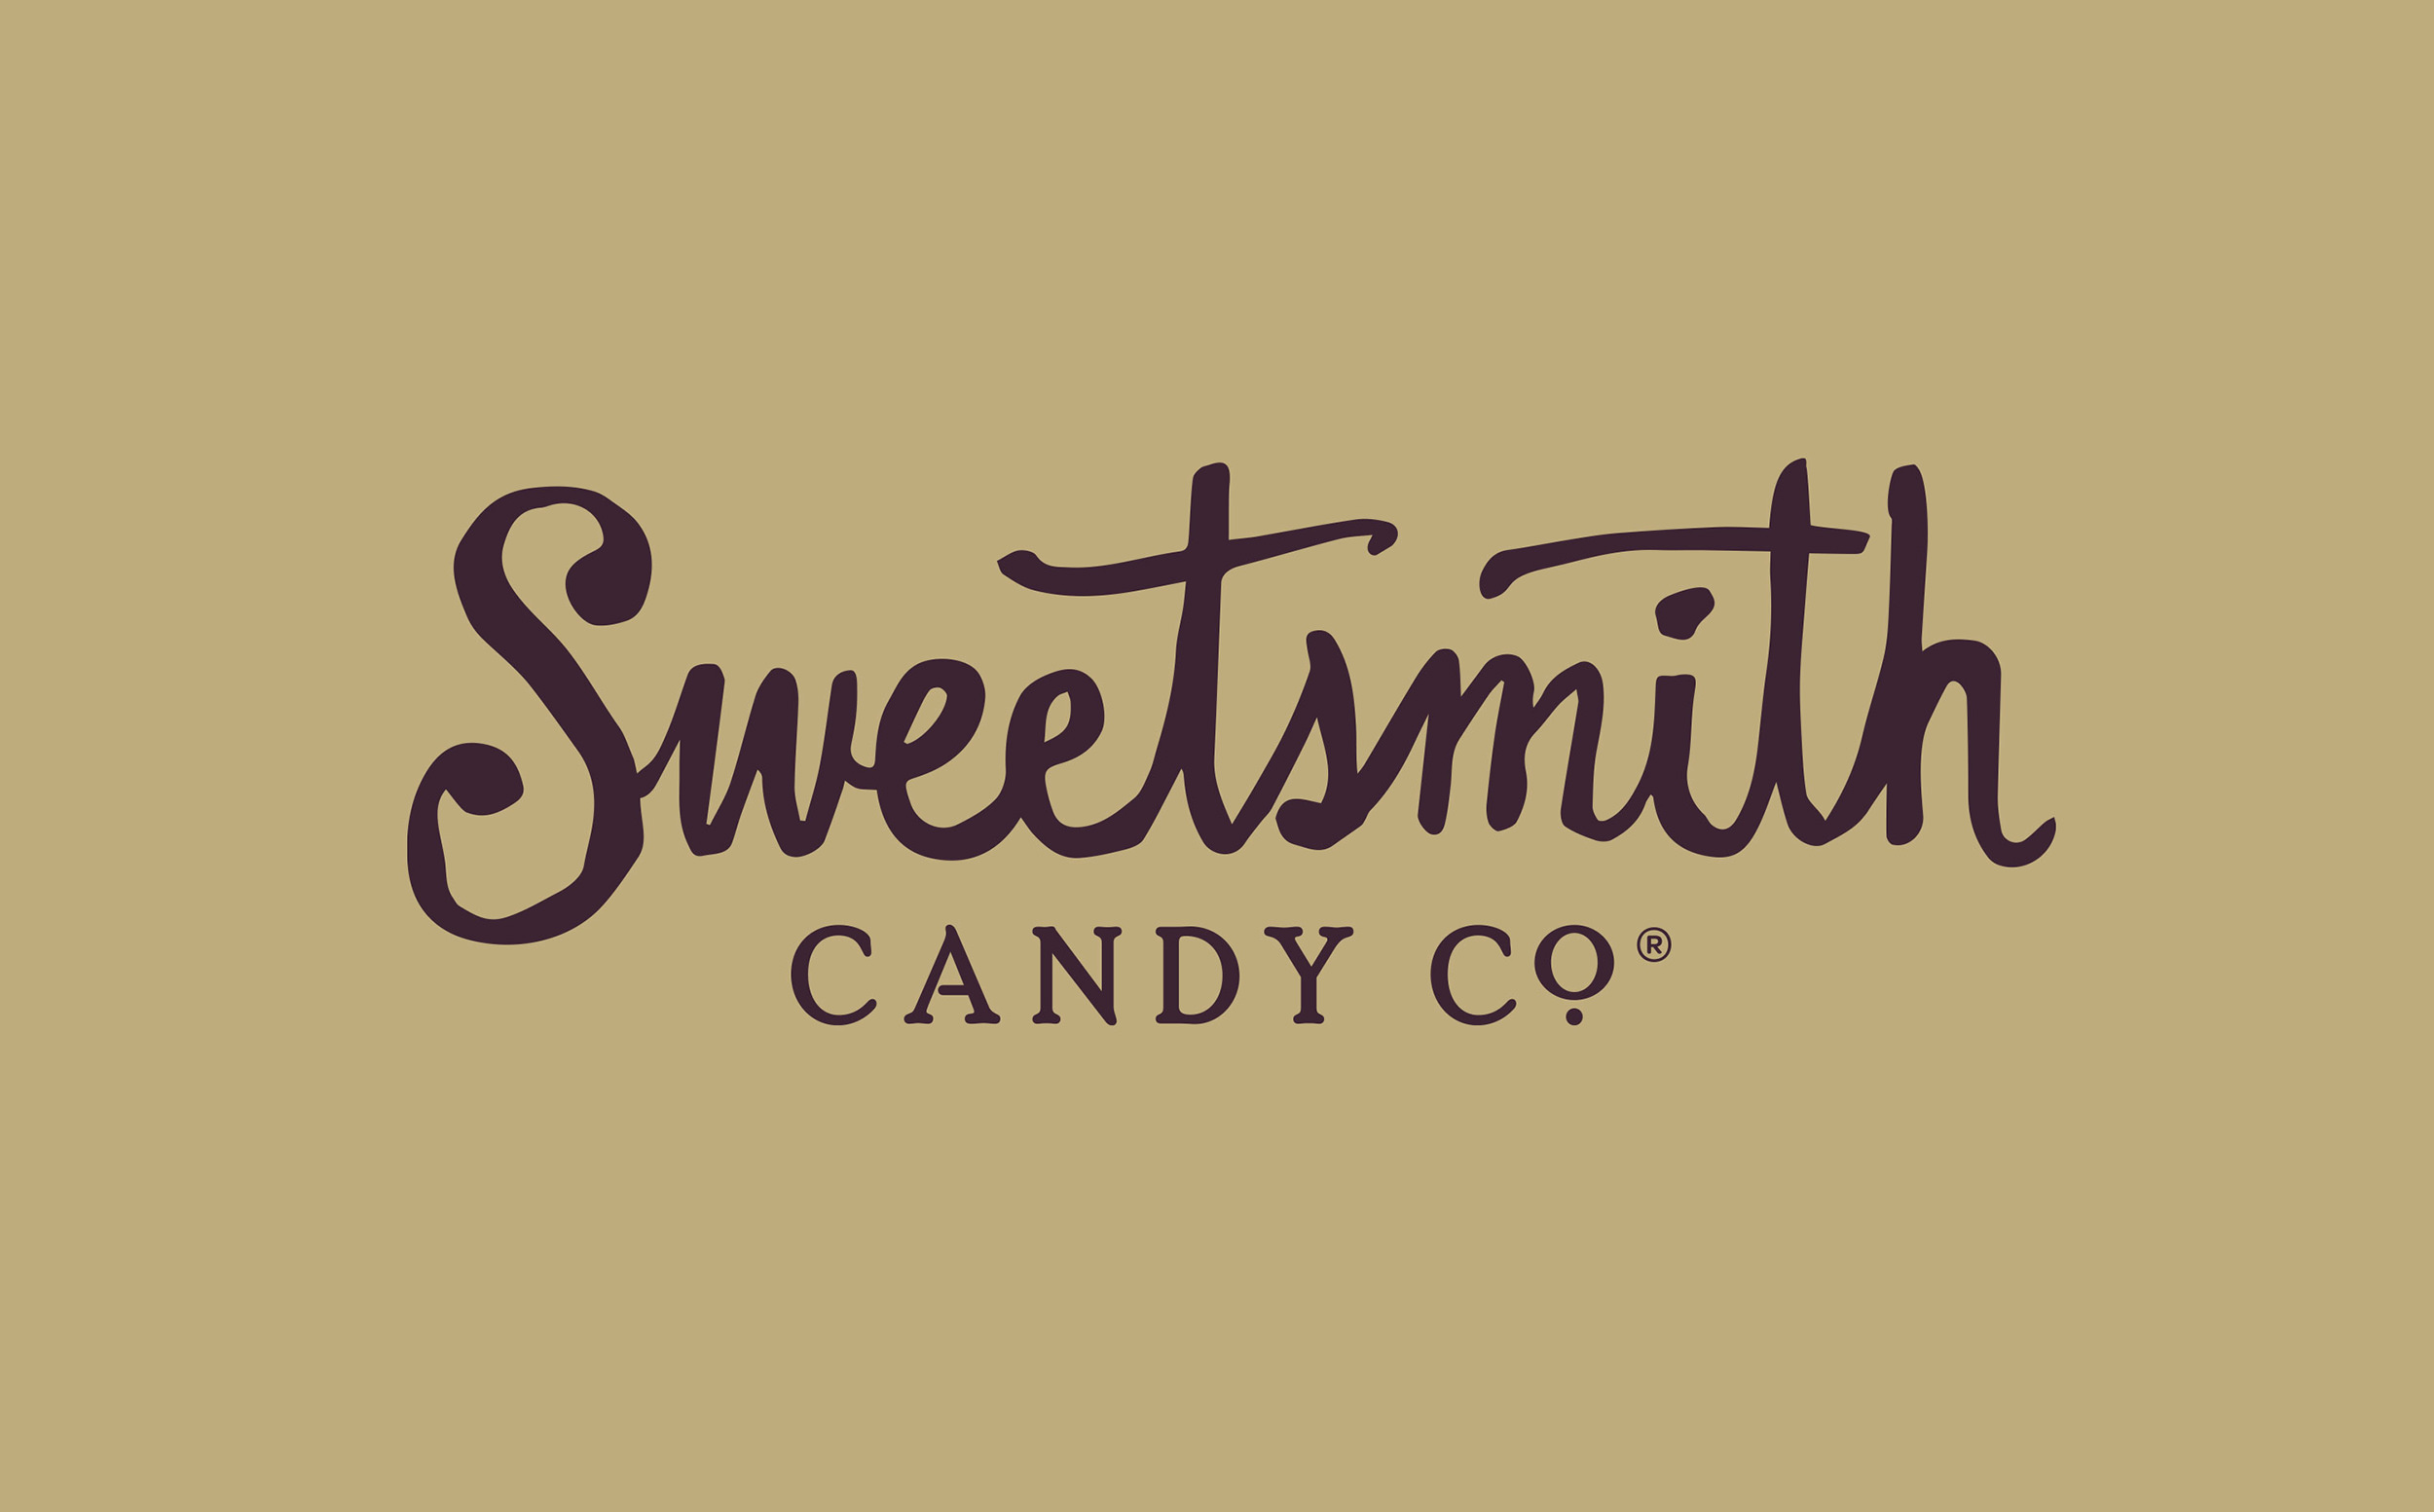 Chad Roberts Design Ltd. Sweetsmith Candy Co. Brand Identity Design